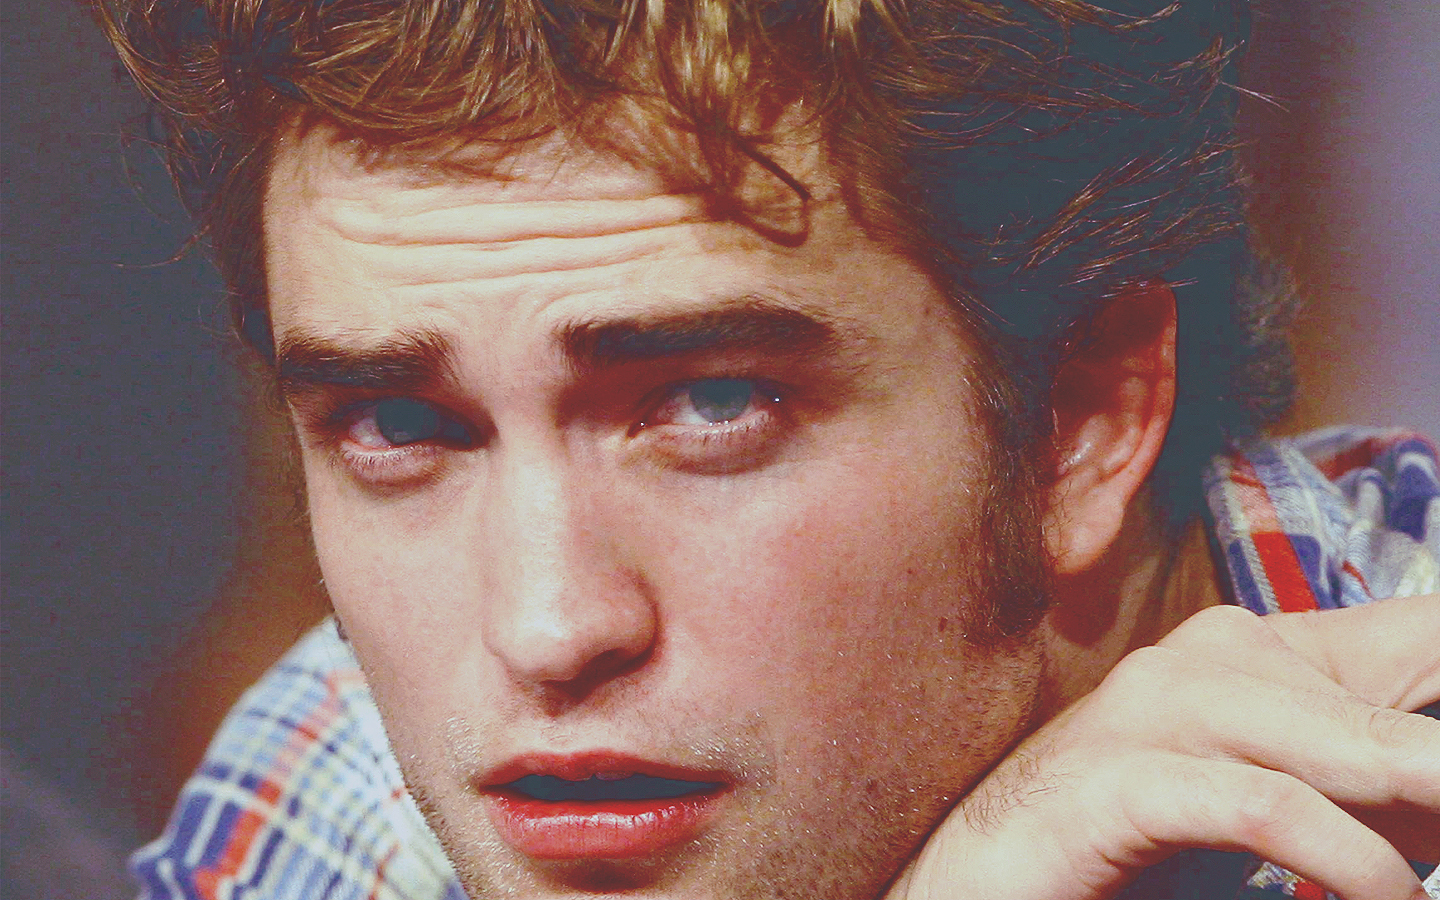 - Rob-robert-pattinson-11957784-1440-900